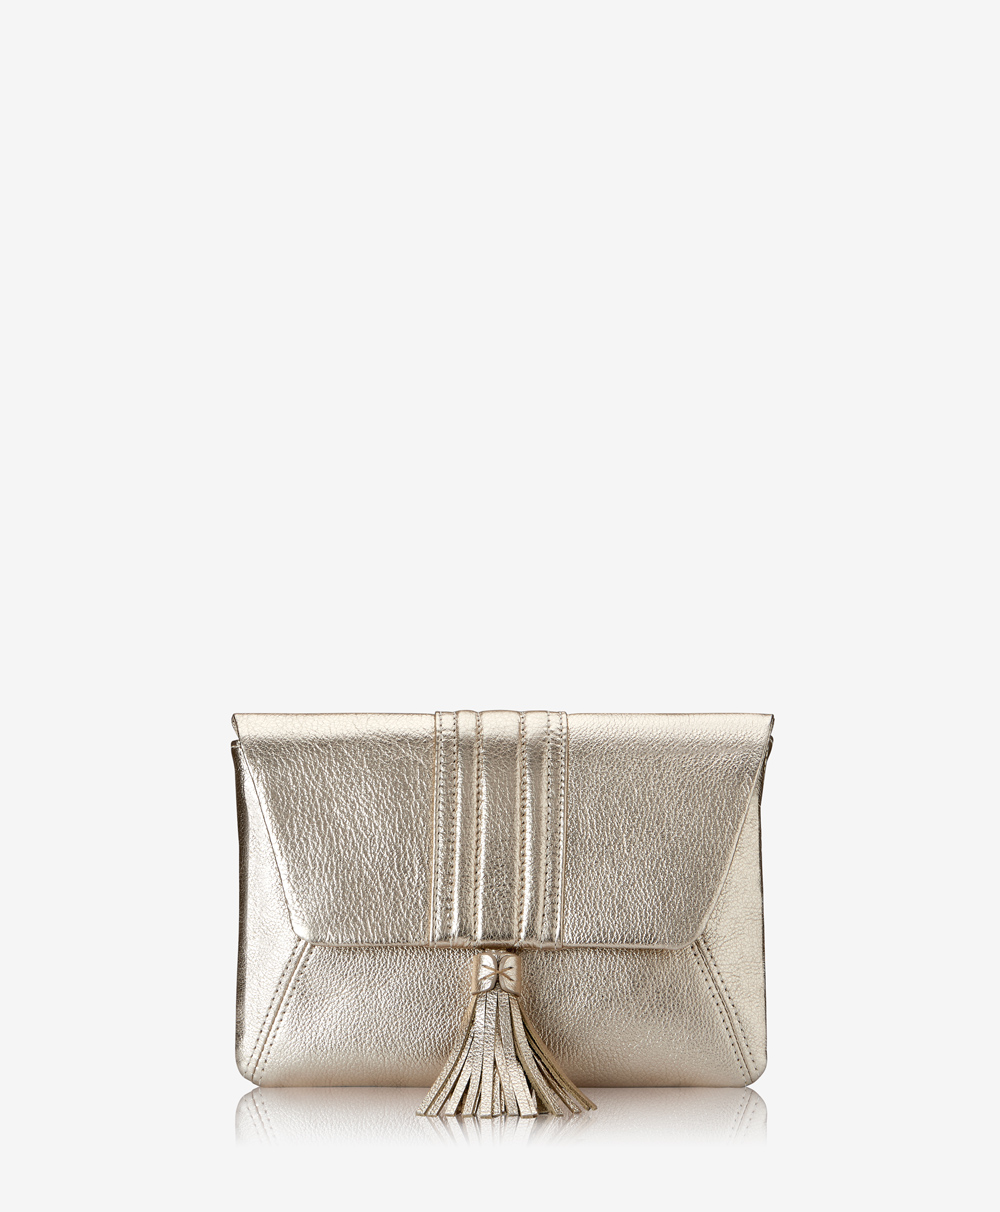 Ava Clutch White Gold Metallic Goatskin AVA-GTI-WTG